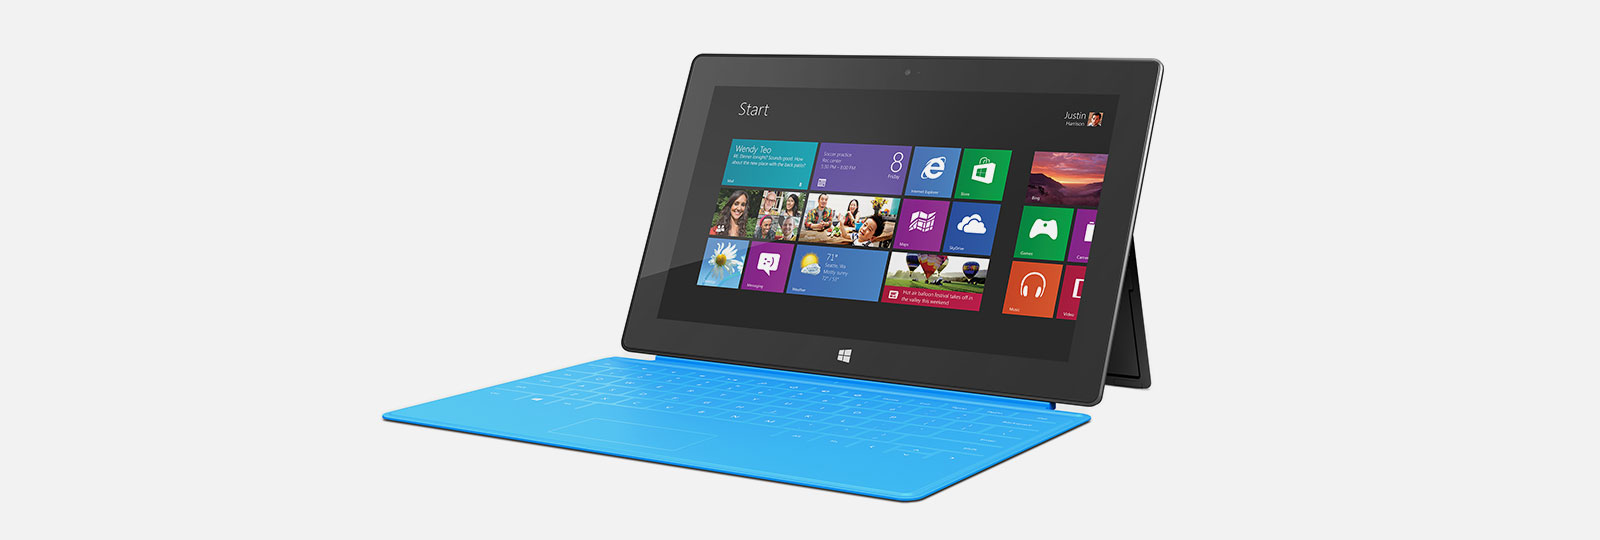 Learn more about Surface RT.